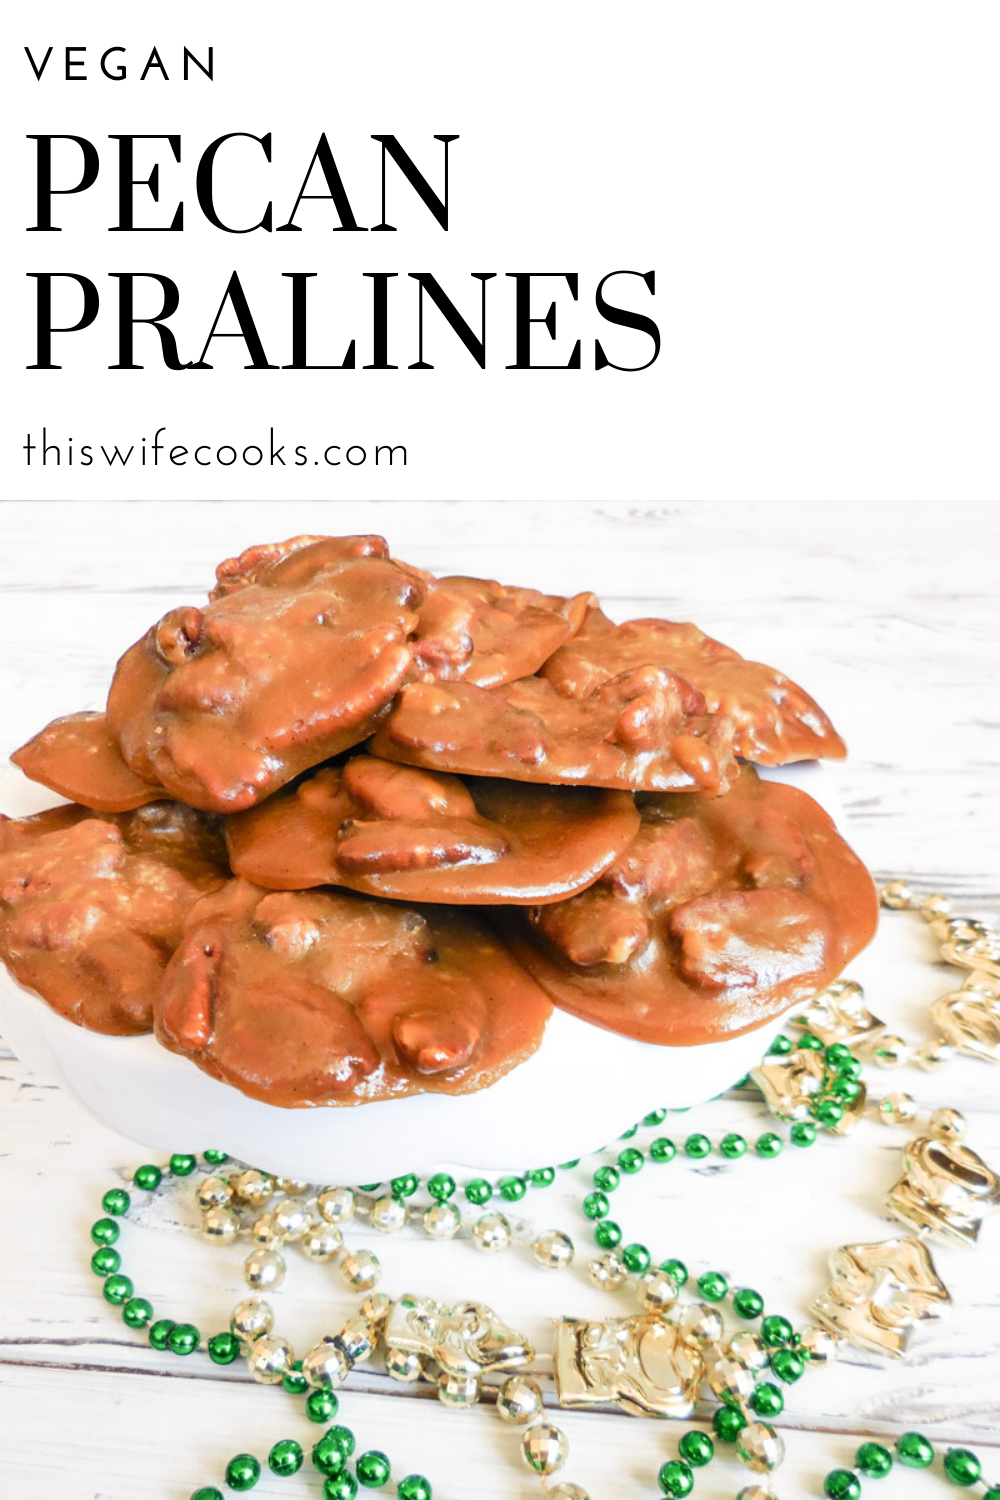 Vegan Pecan Pralines - Get a taste of New Orleans right at home! Sweet, chewy, pecan-laced confections ready in minutes! Laissez les bon temp rouler! via @thiswifecooks